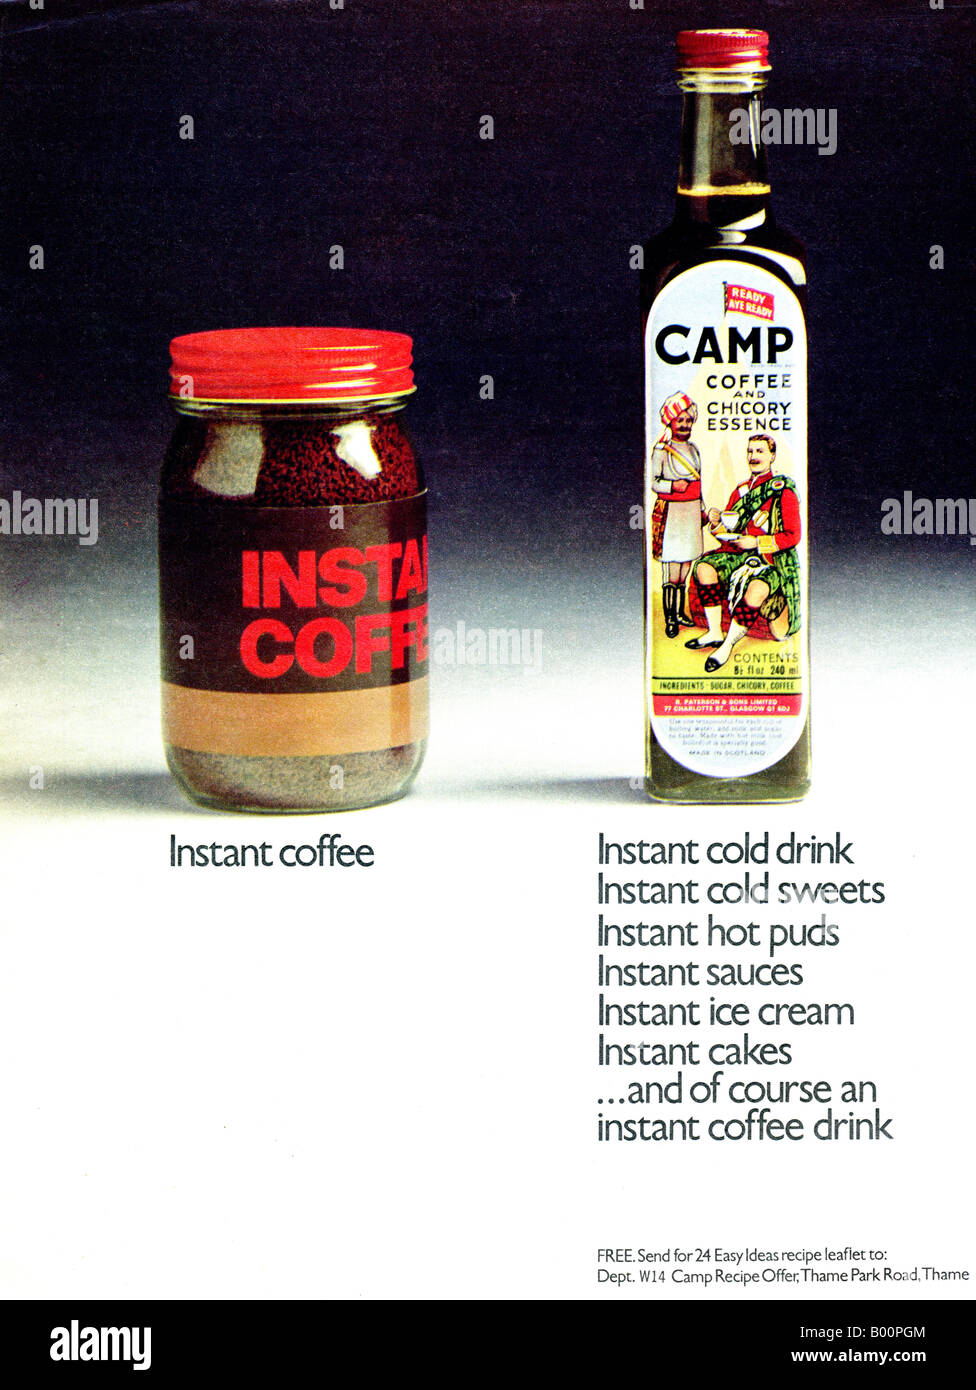 1970s magazine advertisement for Camp Coffee and Chicory Essence Drink      1973 FOR EDITORIAL USE ONLY - Stock Image